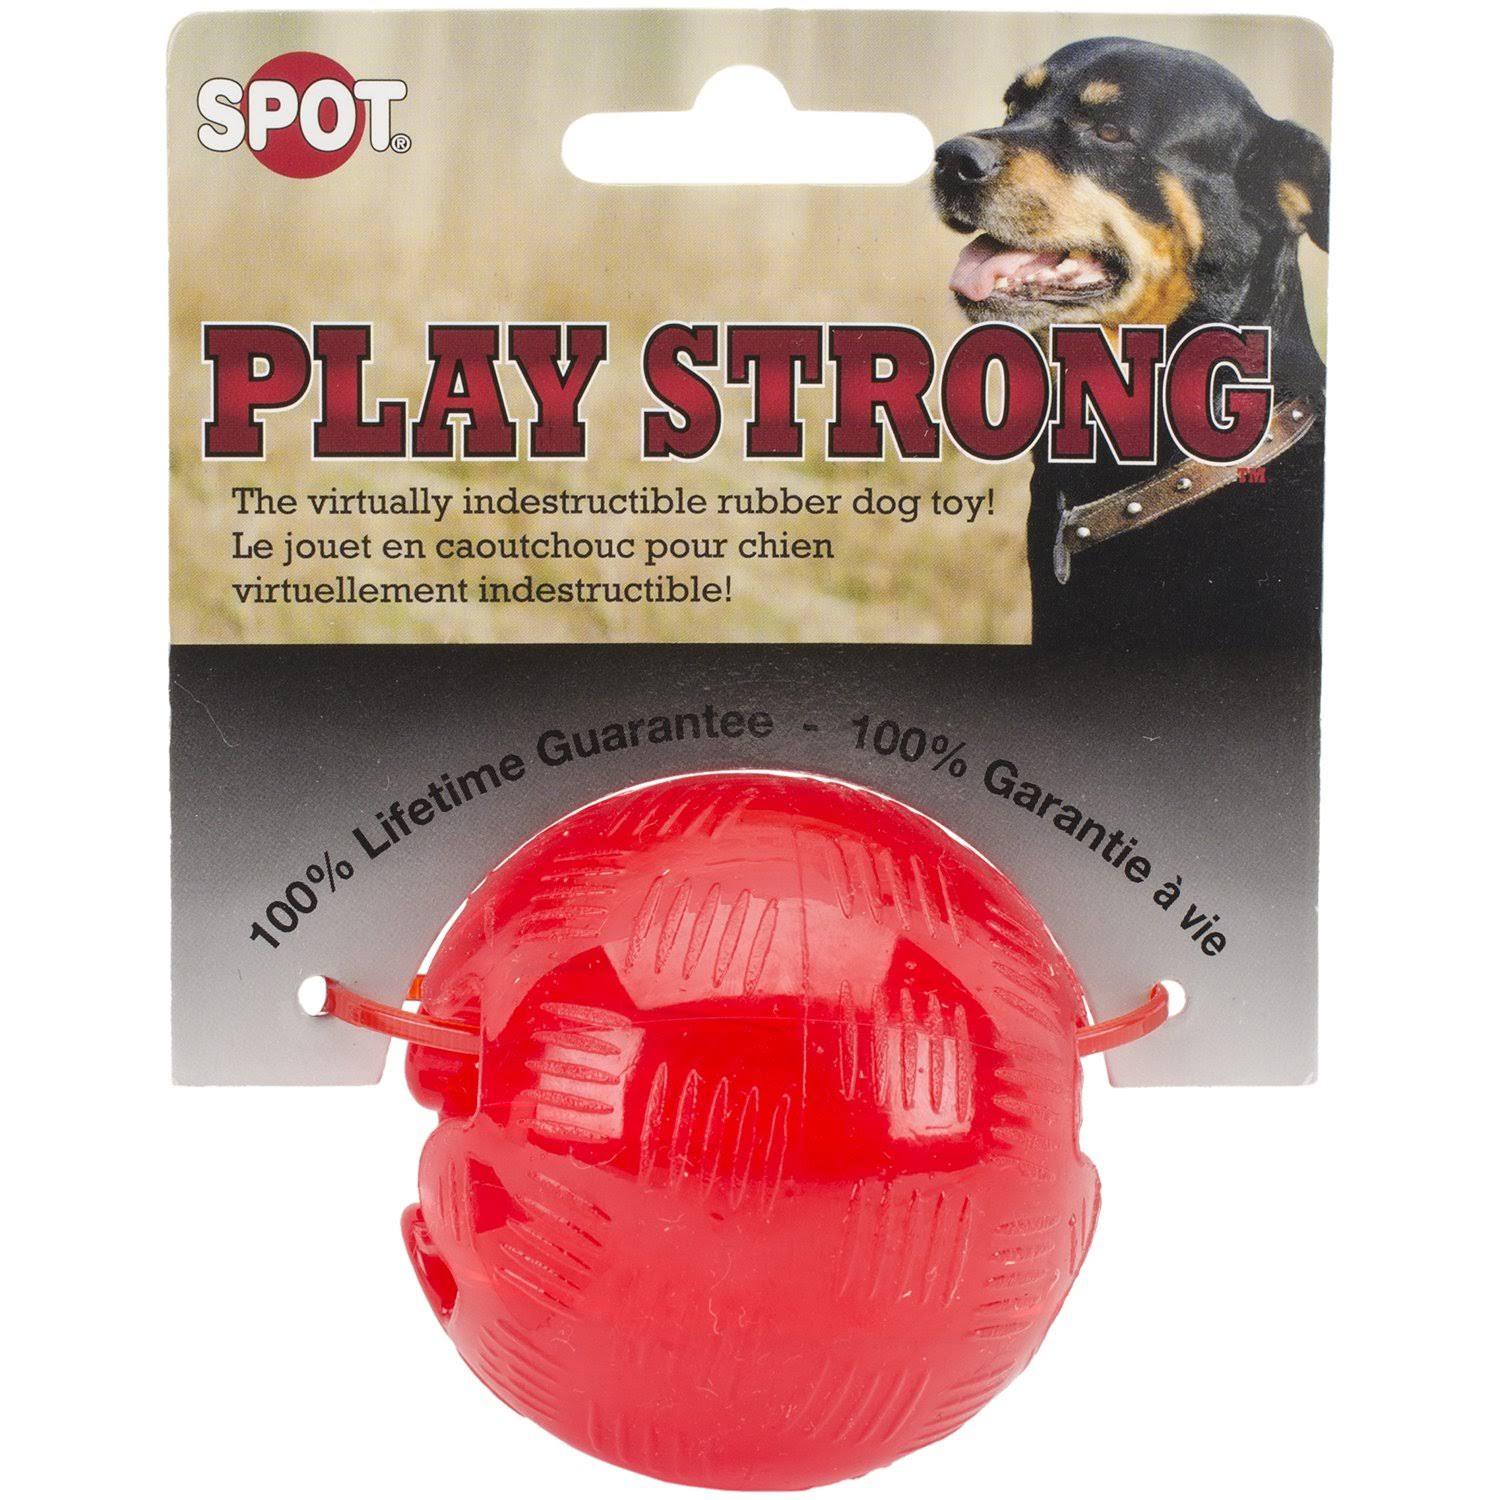 Spot Play Strong Rubber Ball Dog Toy - Small